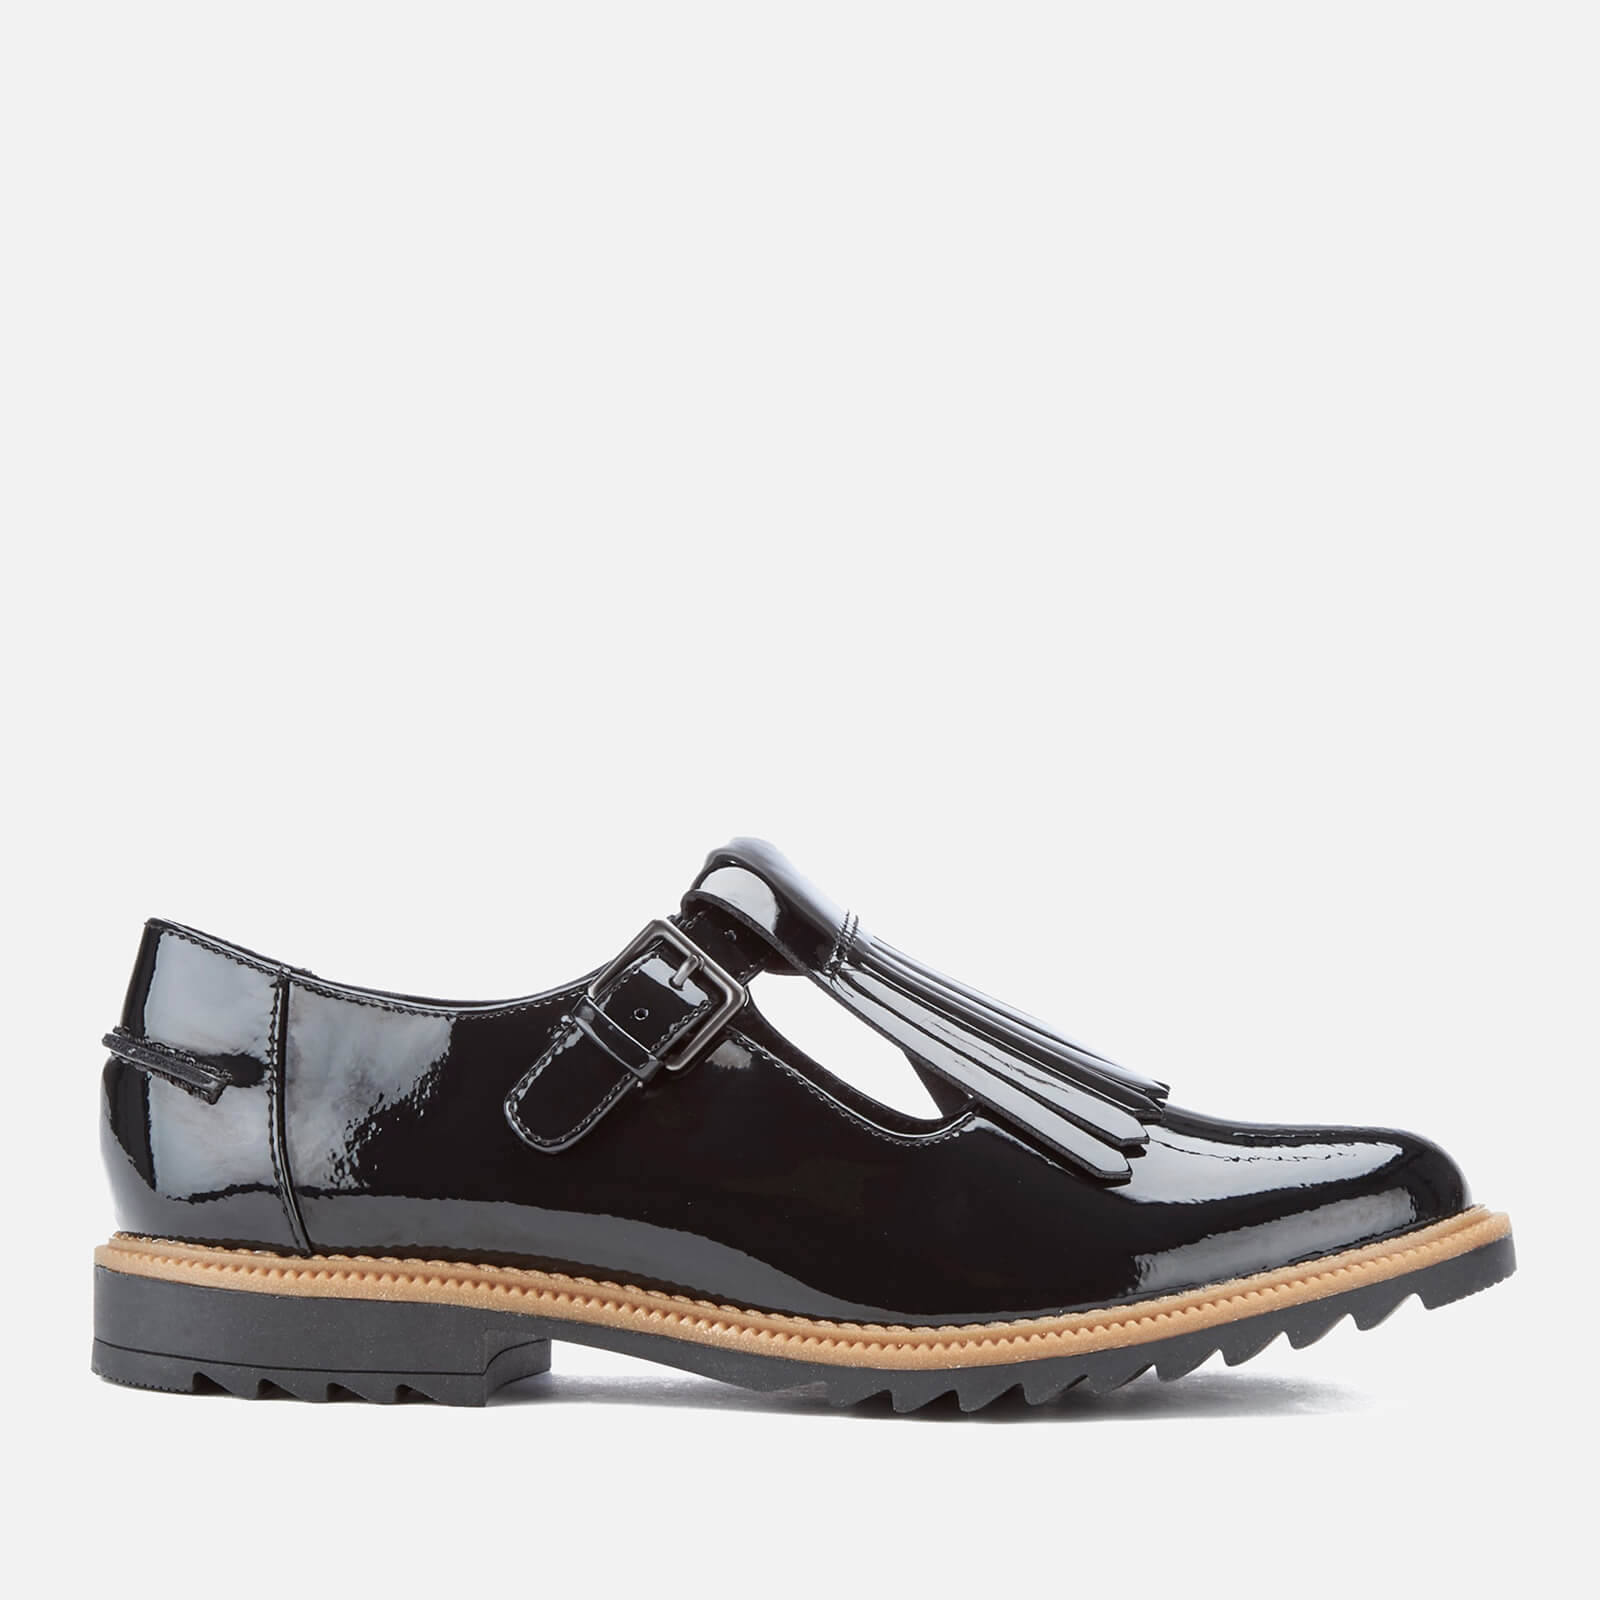 05c31bd84b6 Clarks Women's Griffin Mia Patent Frill T Bar Shoes - Black | FREE UK  Delivery | Allsole